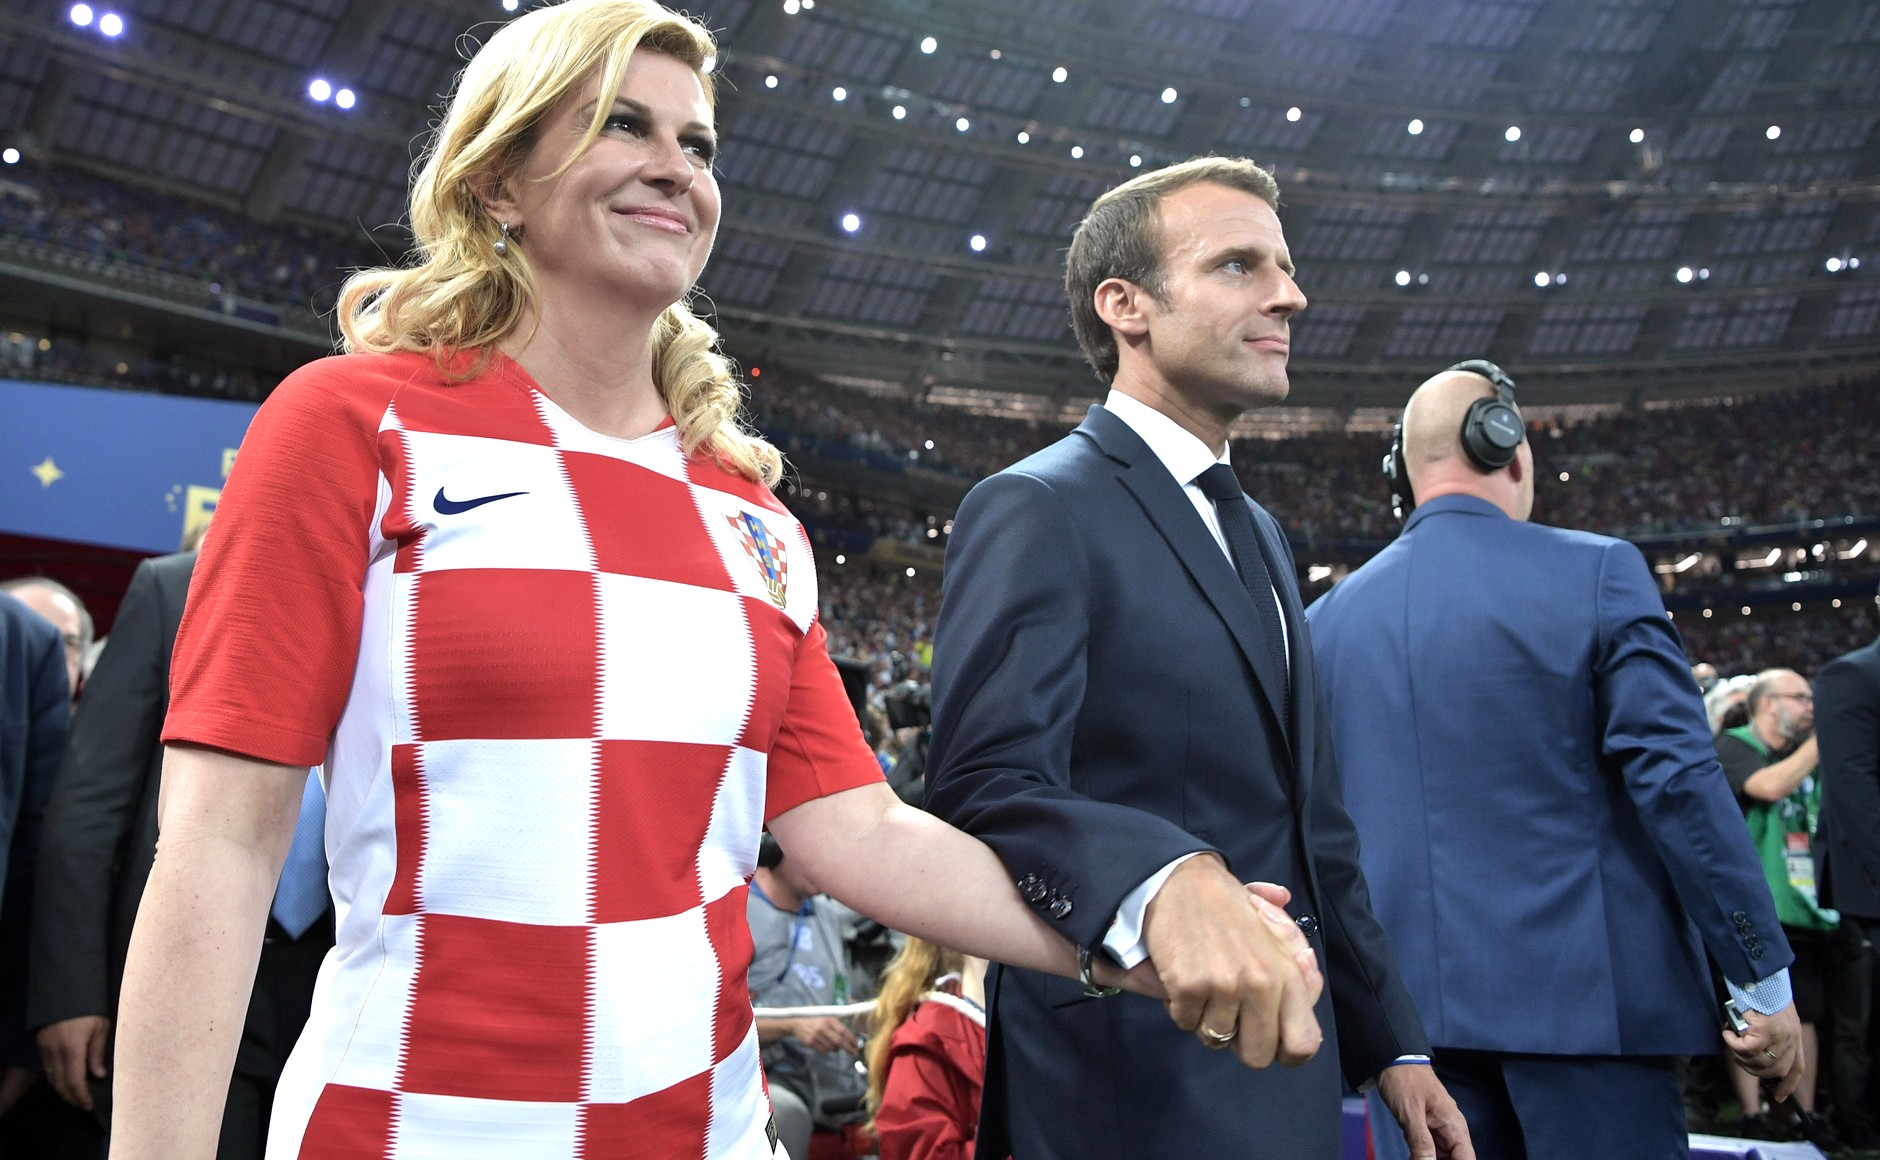 File Kolinda Grabar Kitarovic And Emmanuel Macron Prepare To Award The First And Second Places In The Final Of The 2018 Russian Football Cup Jpg Wikimedia Commons